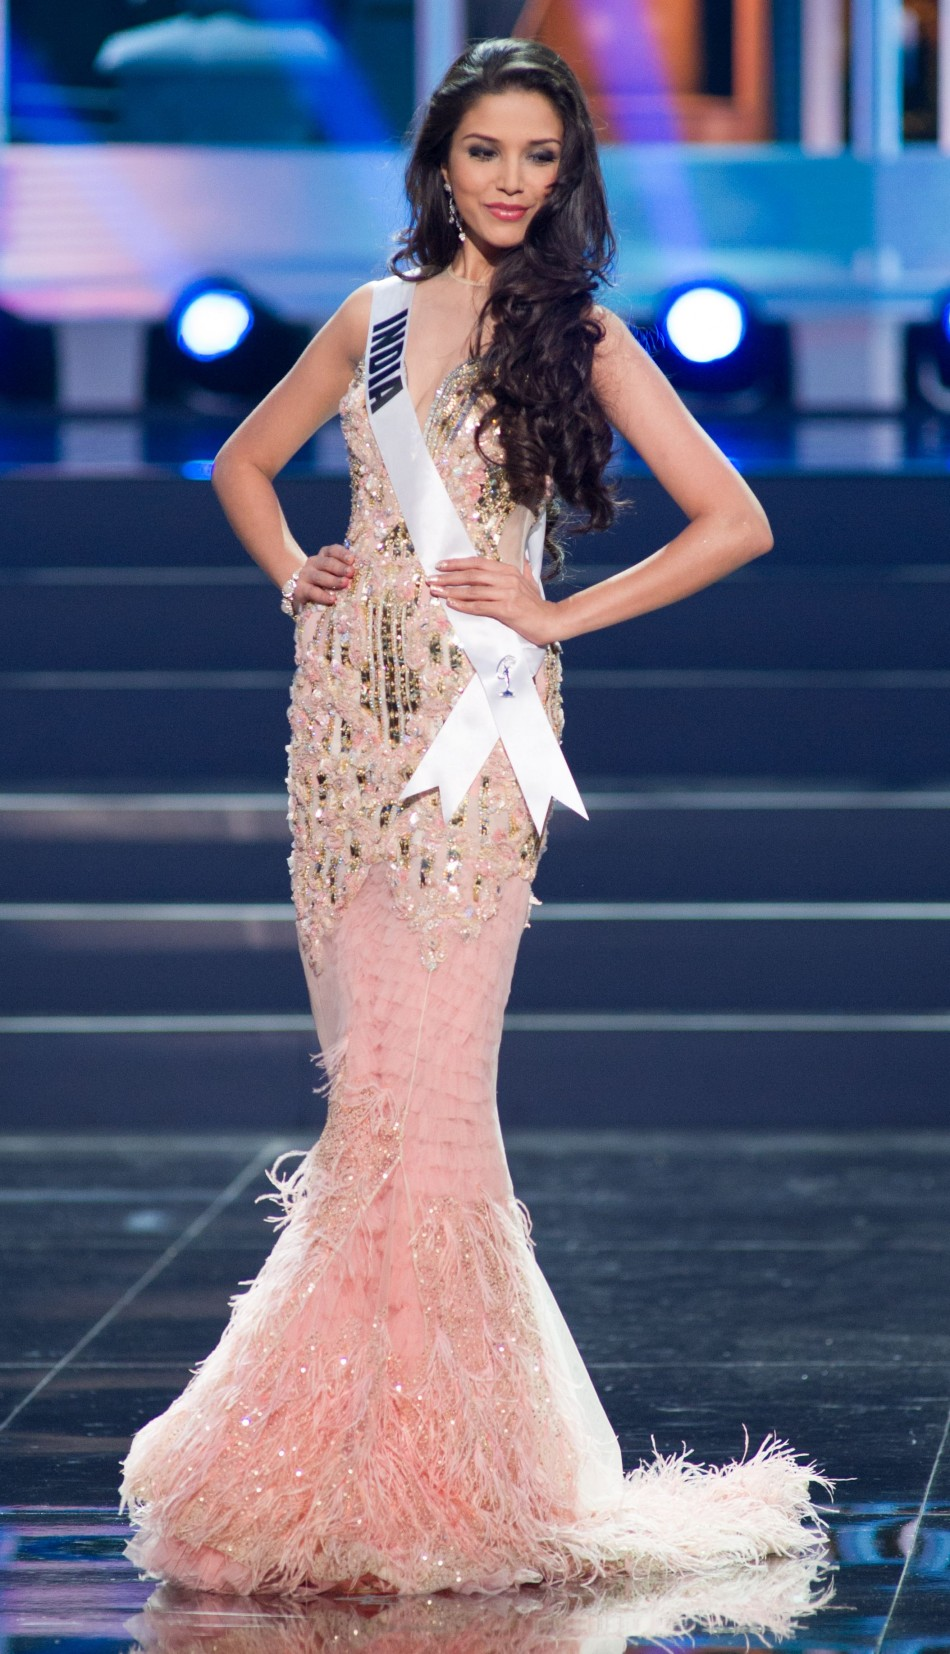 Miss Universe 2013: Top 10 Semi-Finalists Announced [PHOTOS]